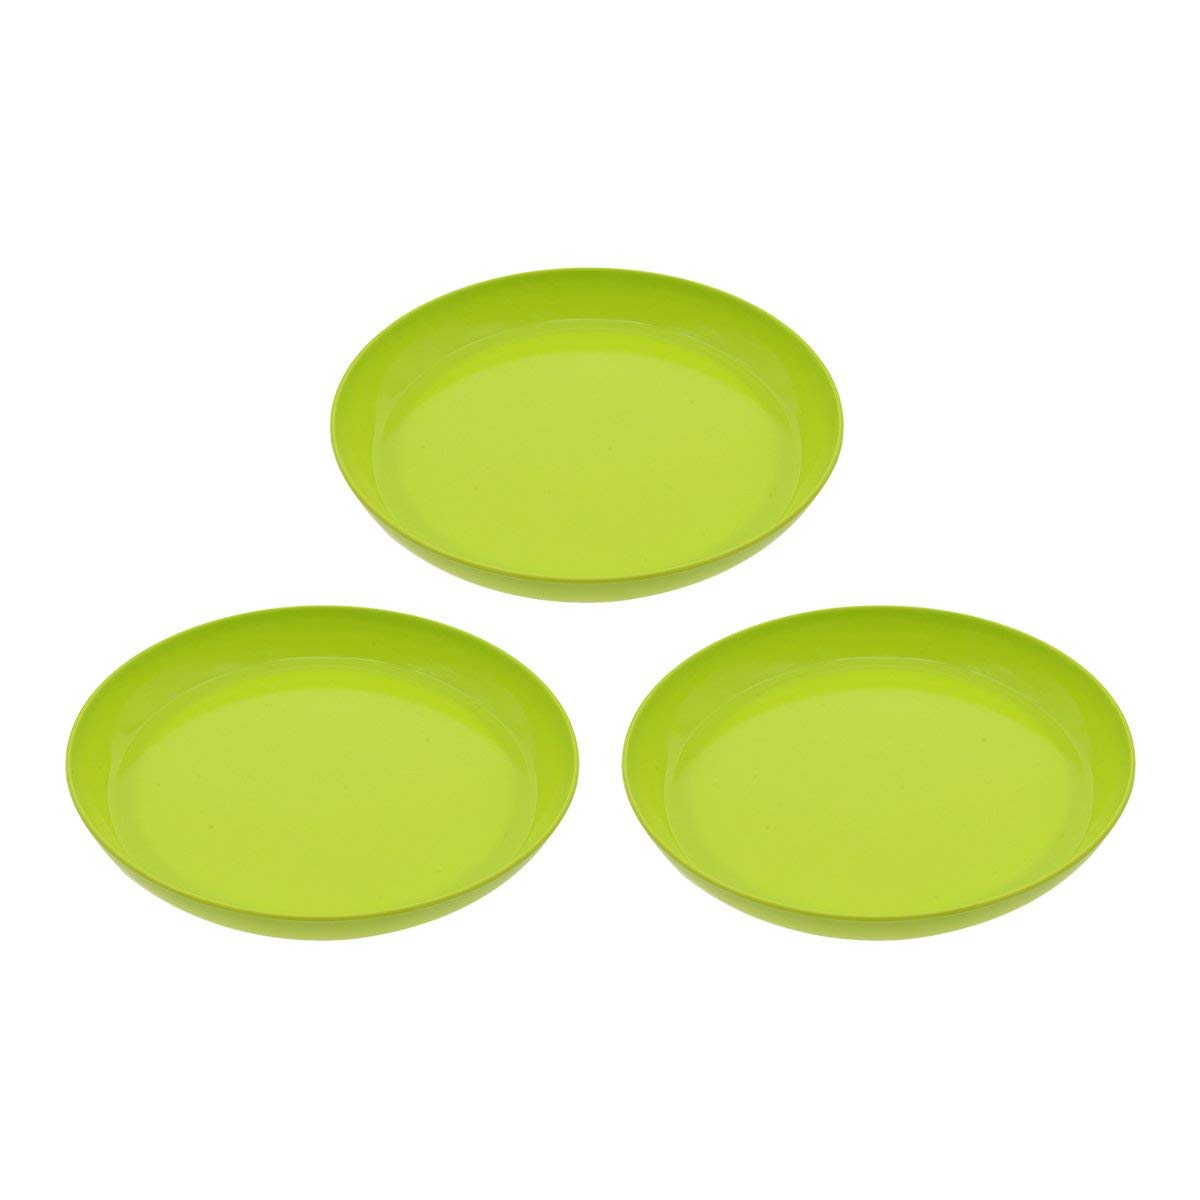 Cheap Clear Plastic Plant Saucers Find Clear Plastic Plant Saucers